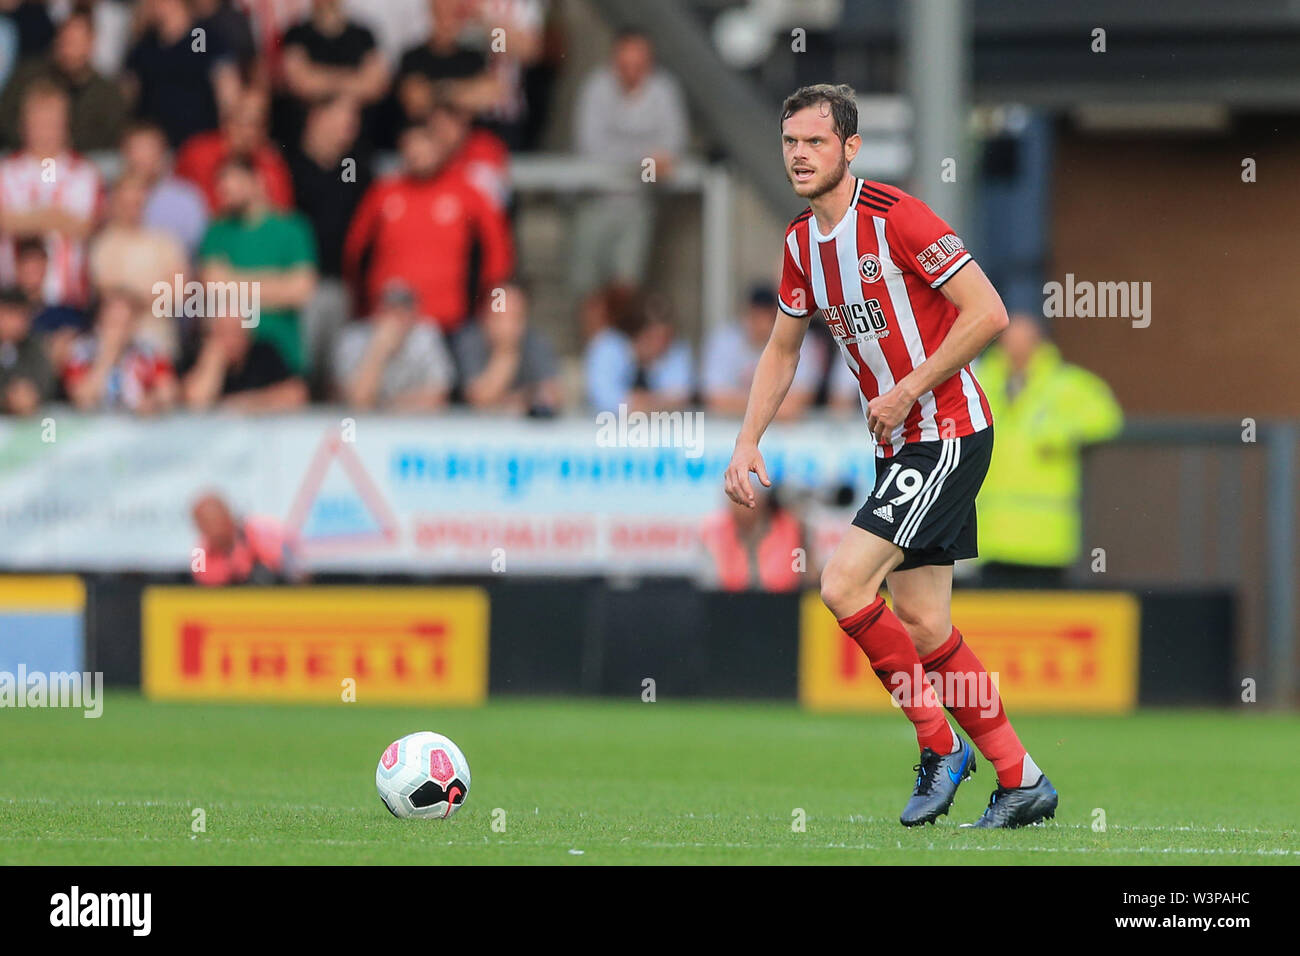 16th July 2019, Pirelli Stadium, Burton upon Trent, England; Pre-Season friendly, Burton Albion vs Sheffield United : Richard Stearman of Sheffield United during the game Credit: Mark Cosgrove/News Images  English Football League images are subject to DataCo Licence - Stock Image